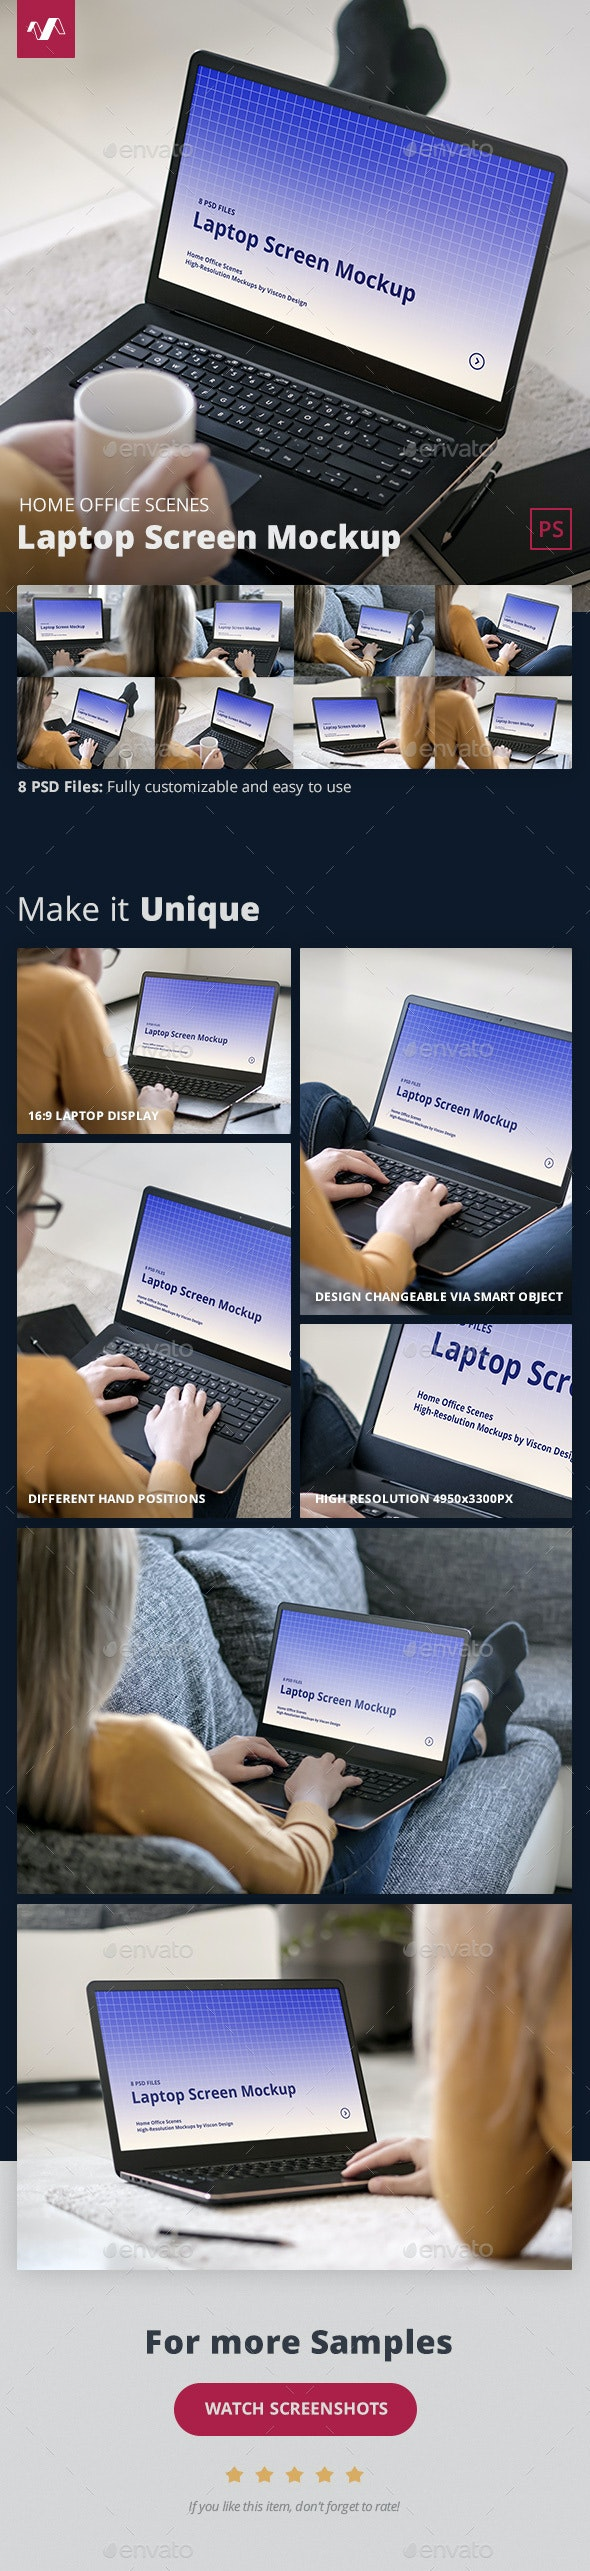 Laptop Mockup Home Office Scenes - Laptop Displays